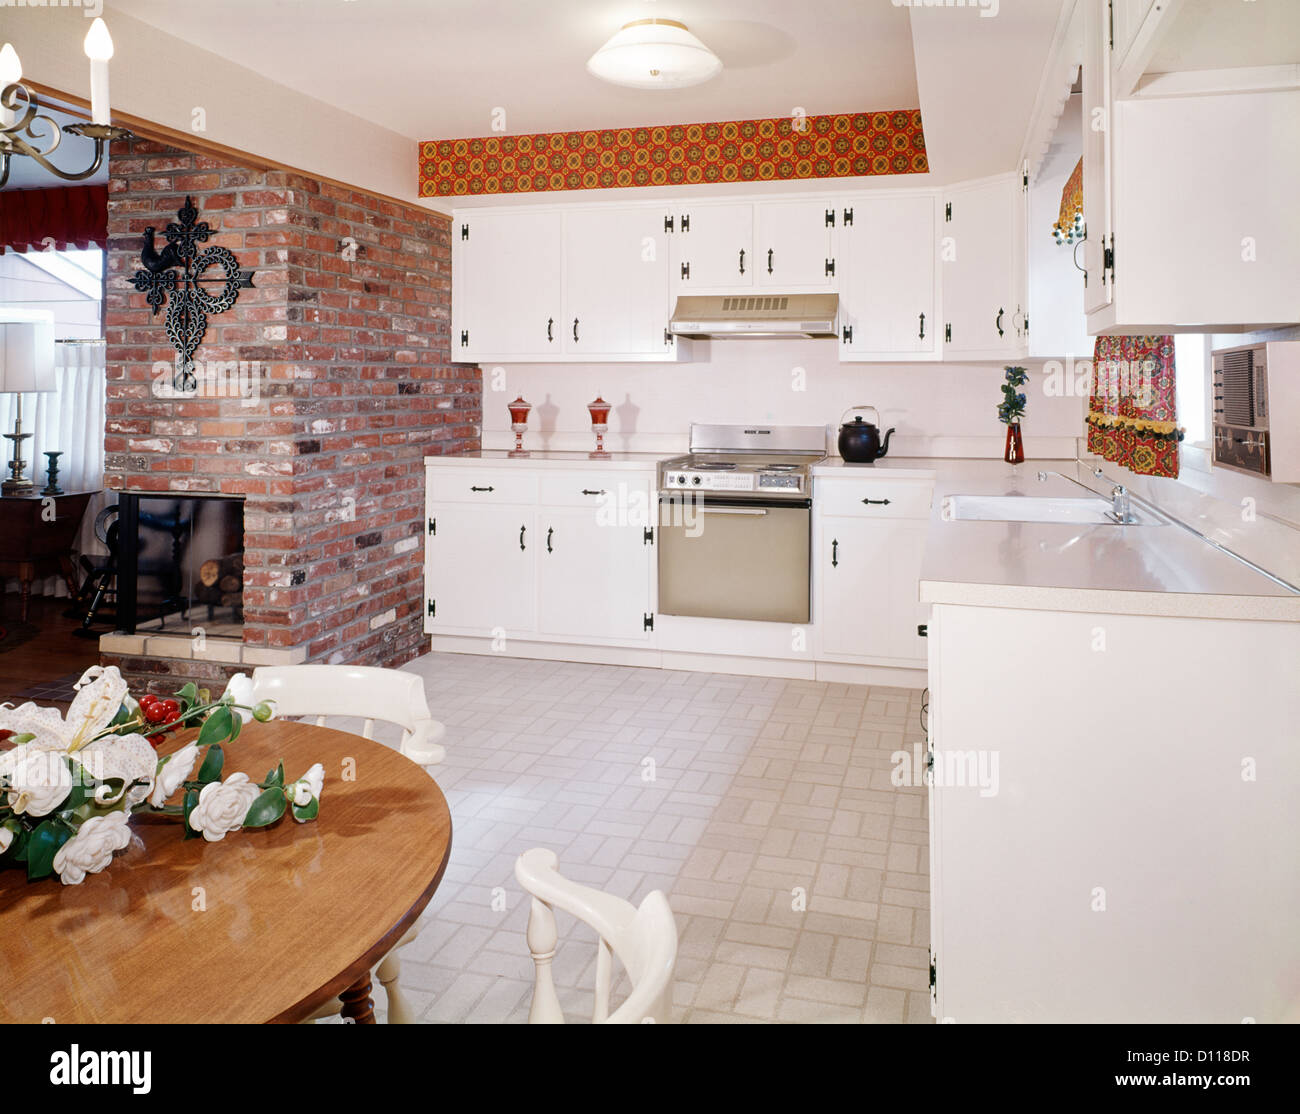 1960s KITCHEN INTERIOR WITH BRICK WALL AND WHITE COUNTRY